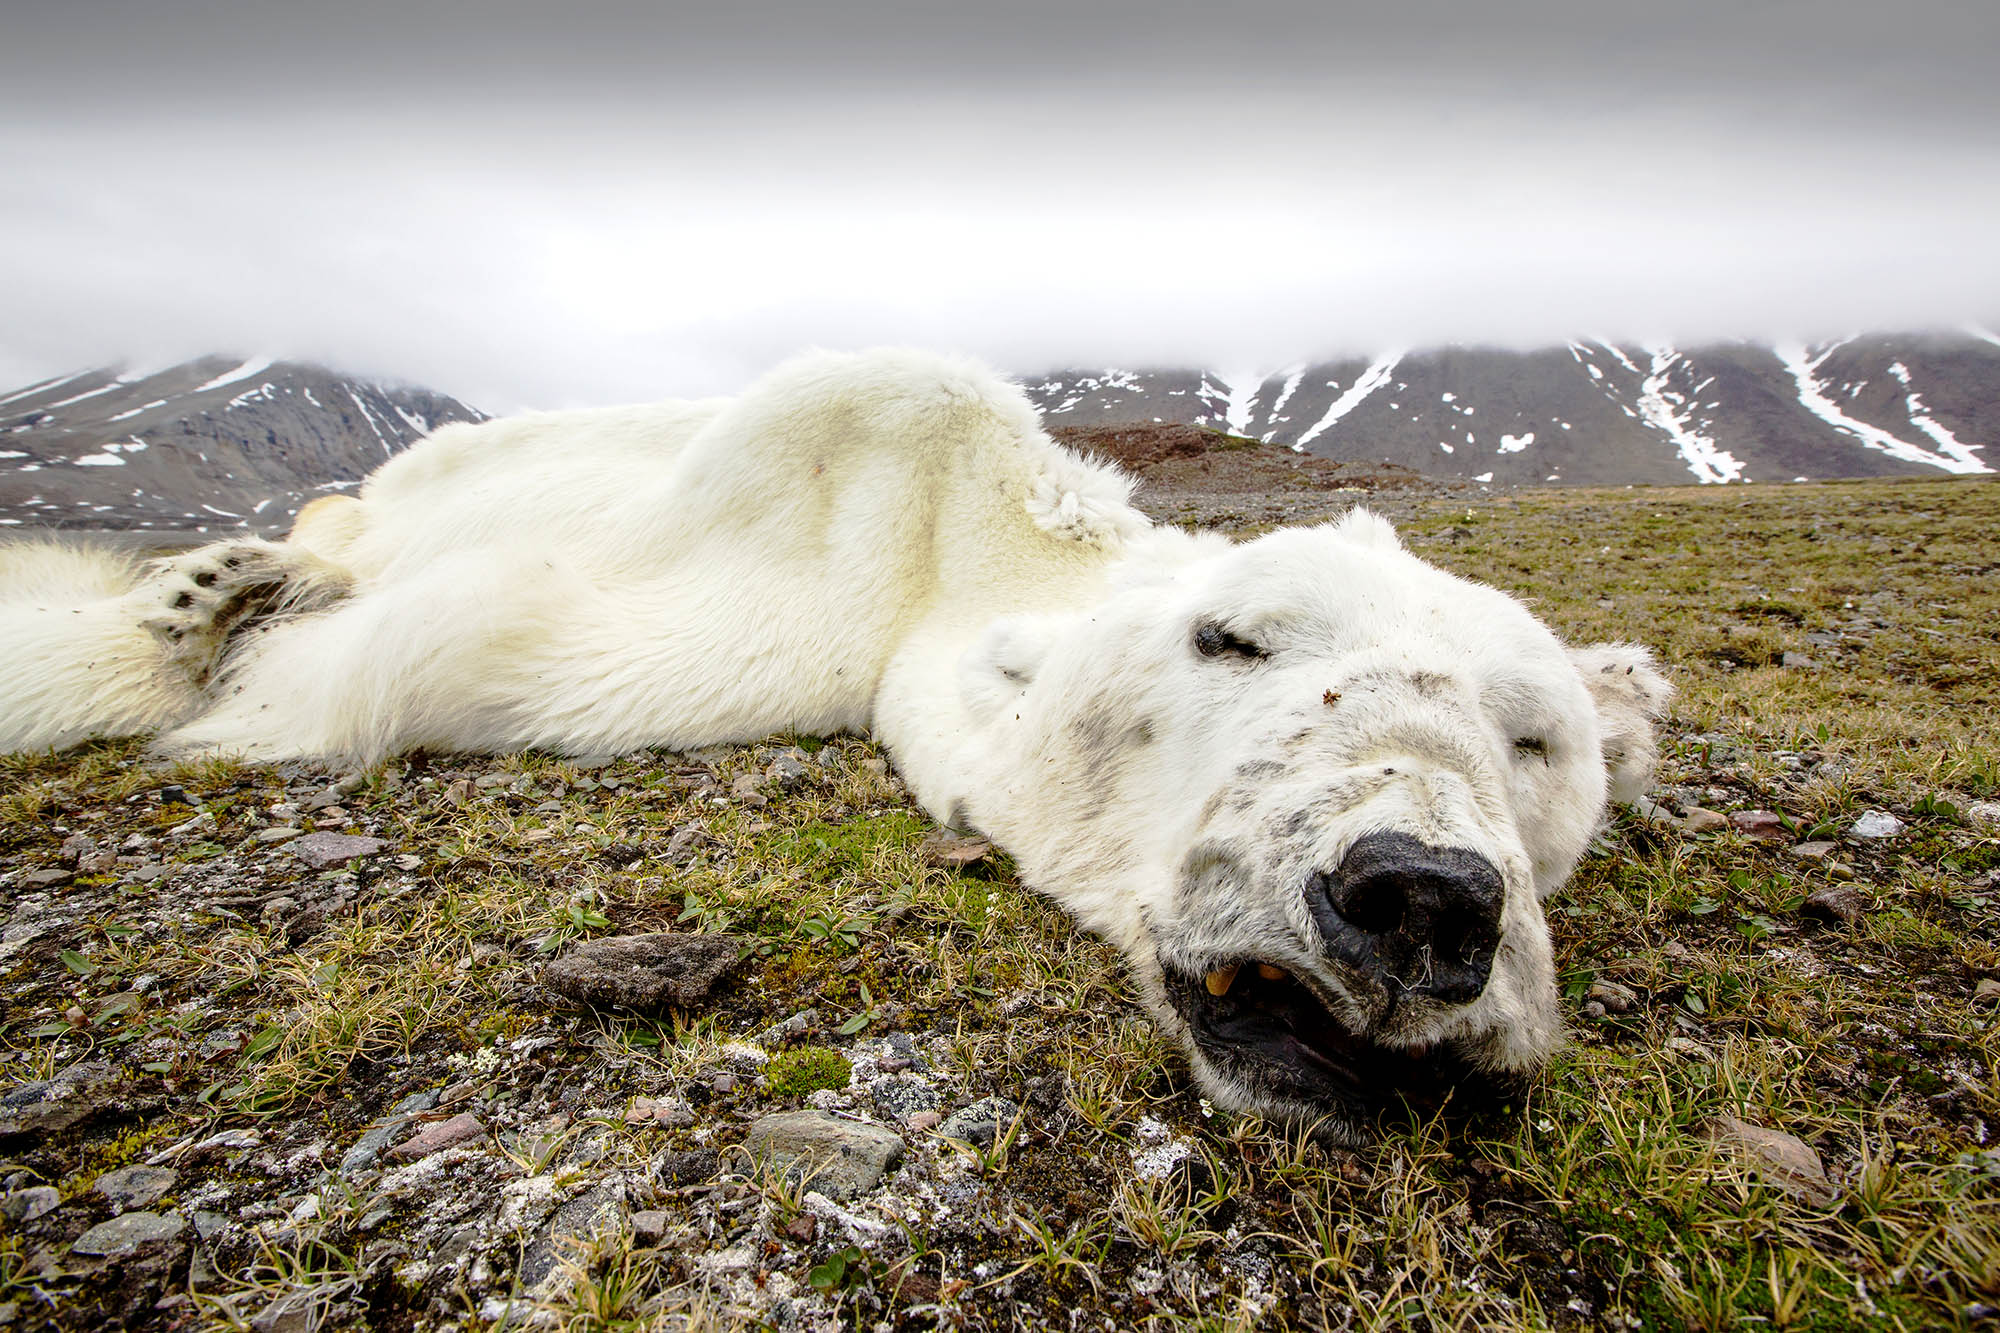 A dead male polar bear lies on the ground with icy hills and clouds in the background